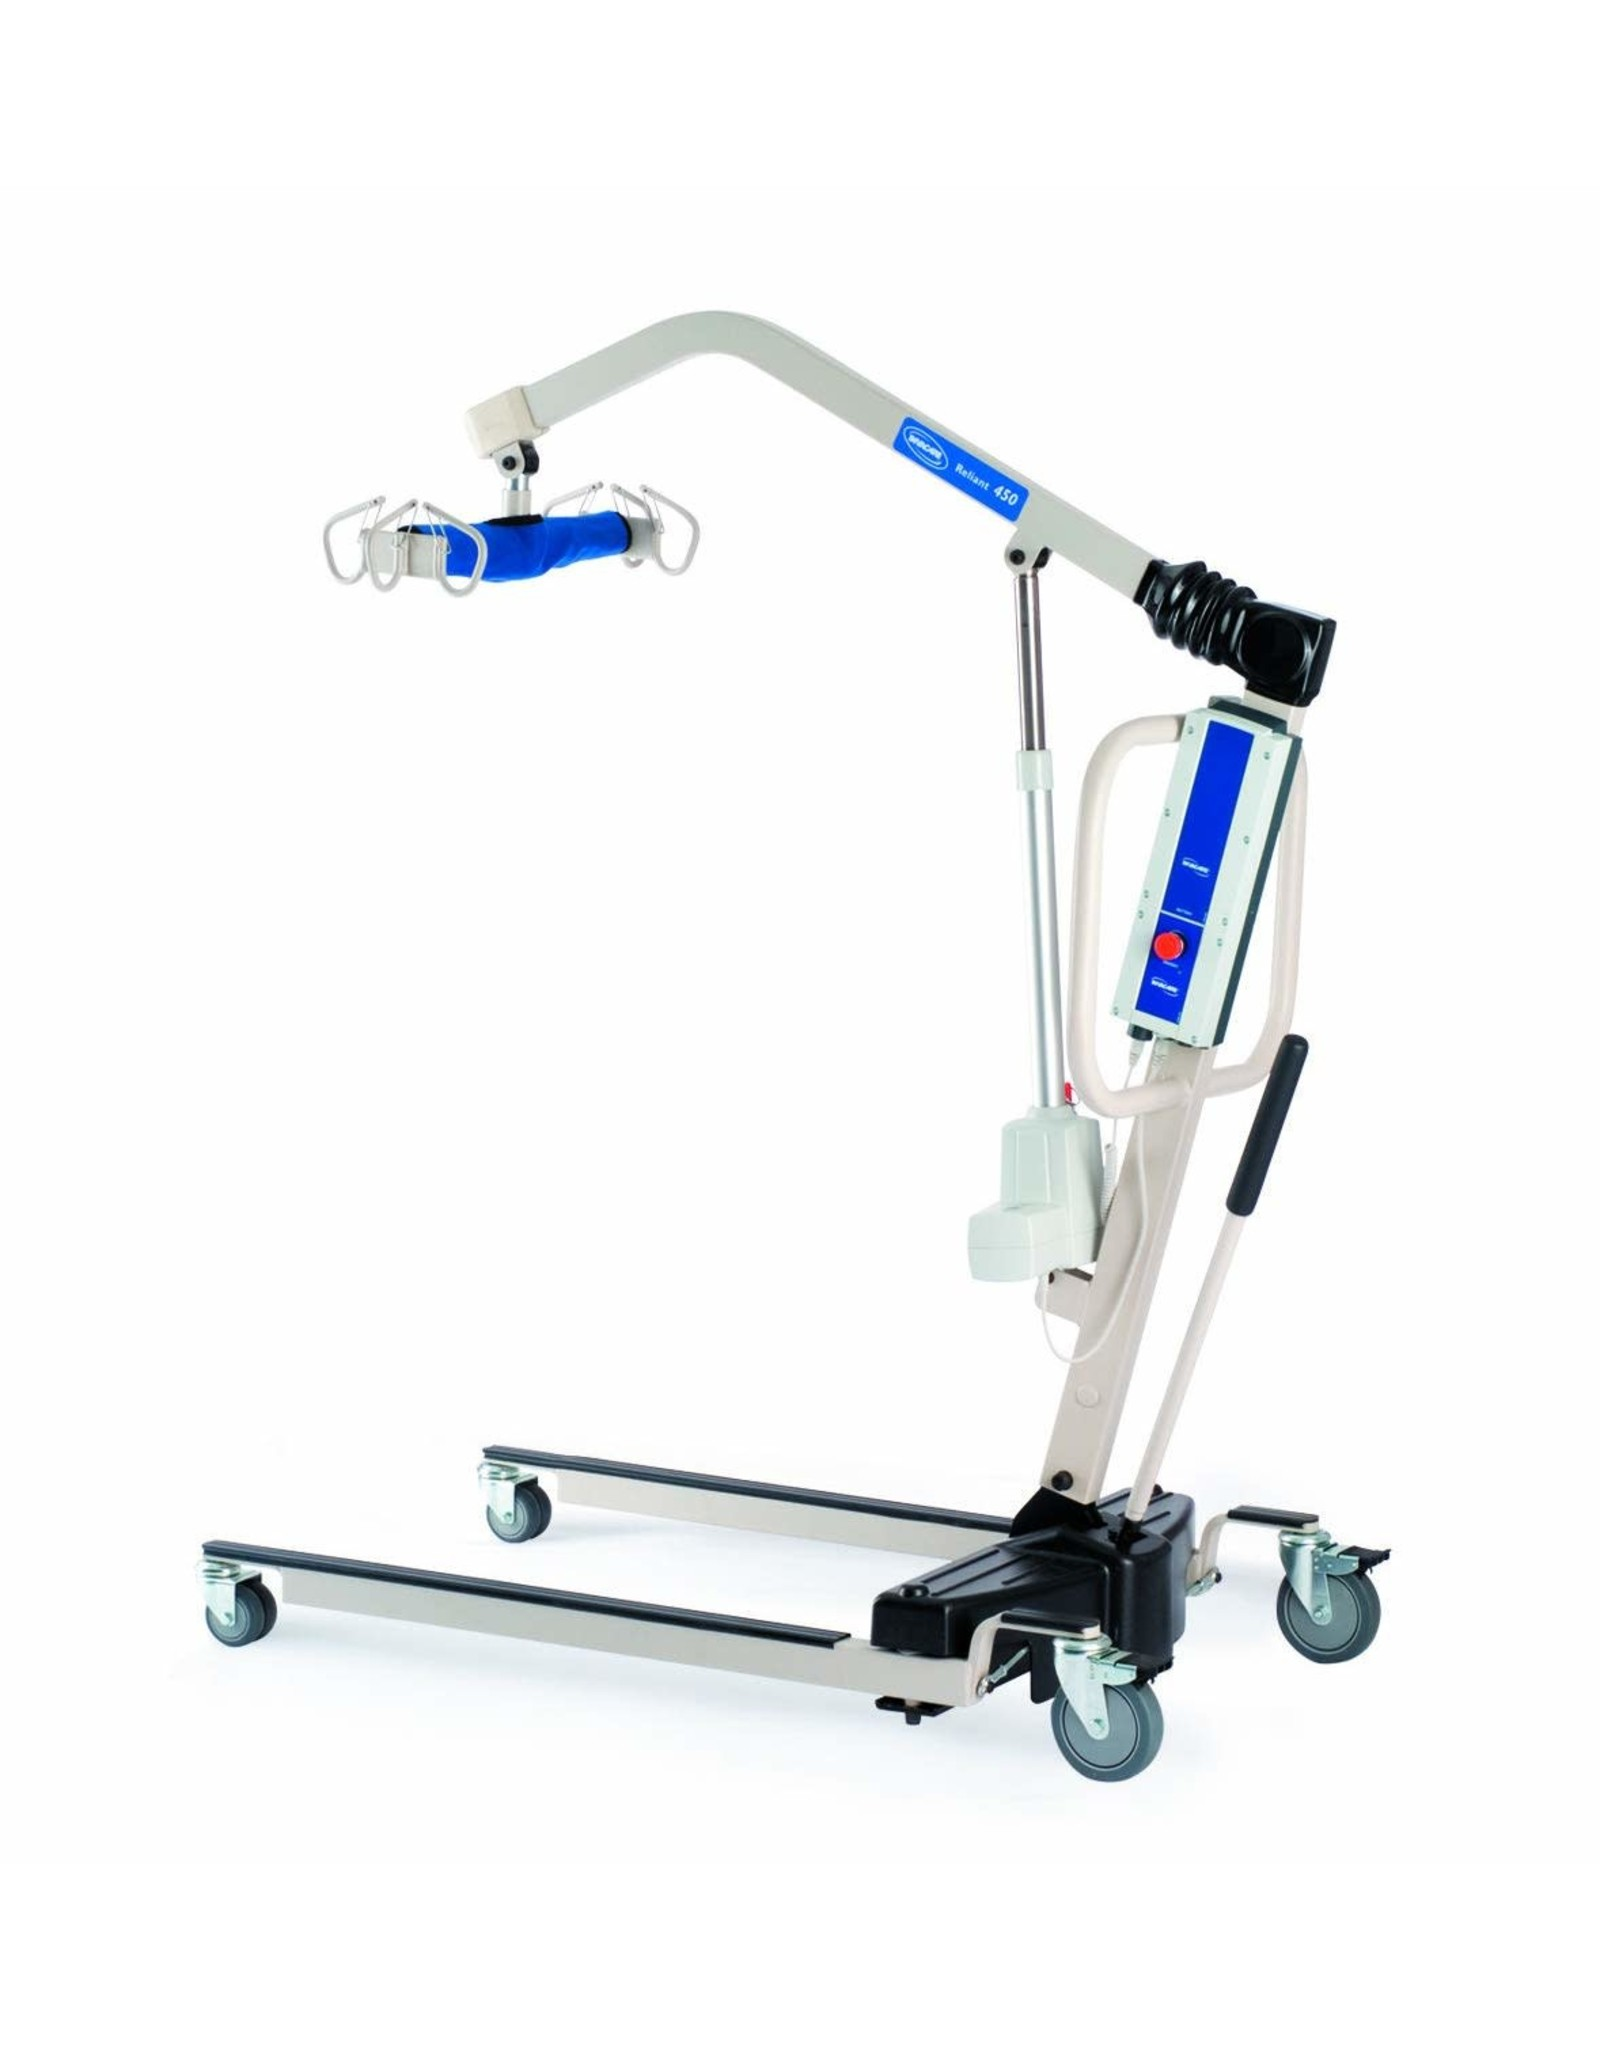 Invacare Invacare Reliant Battery-Powered Patient Lift with Manual Low Base, 450 lb. Weight Capacity, RPL450-1